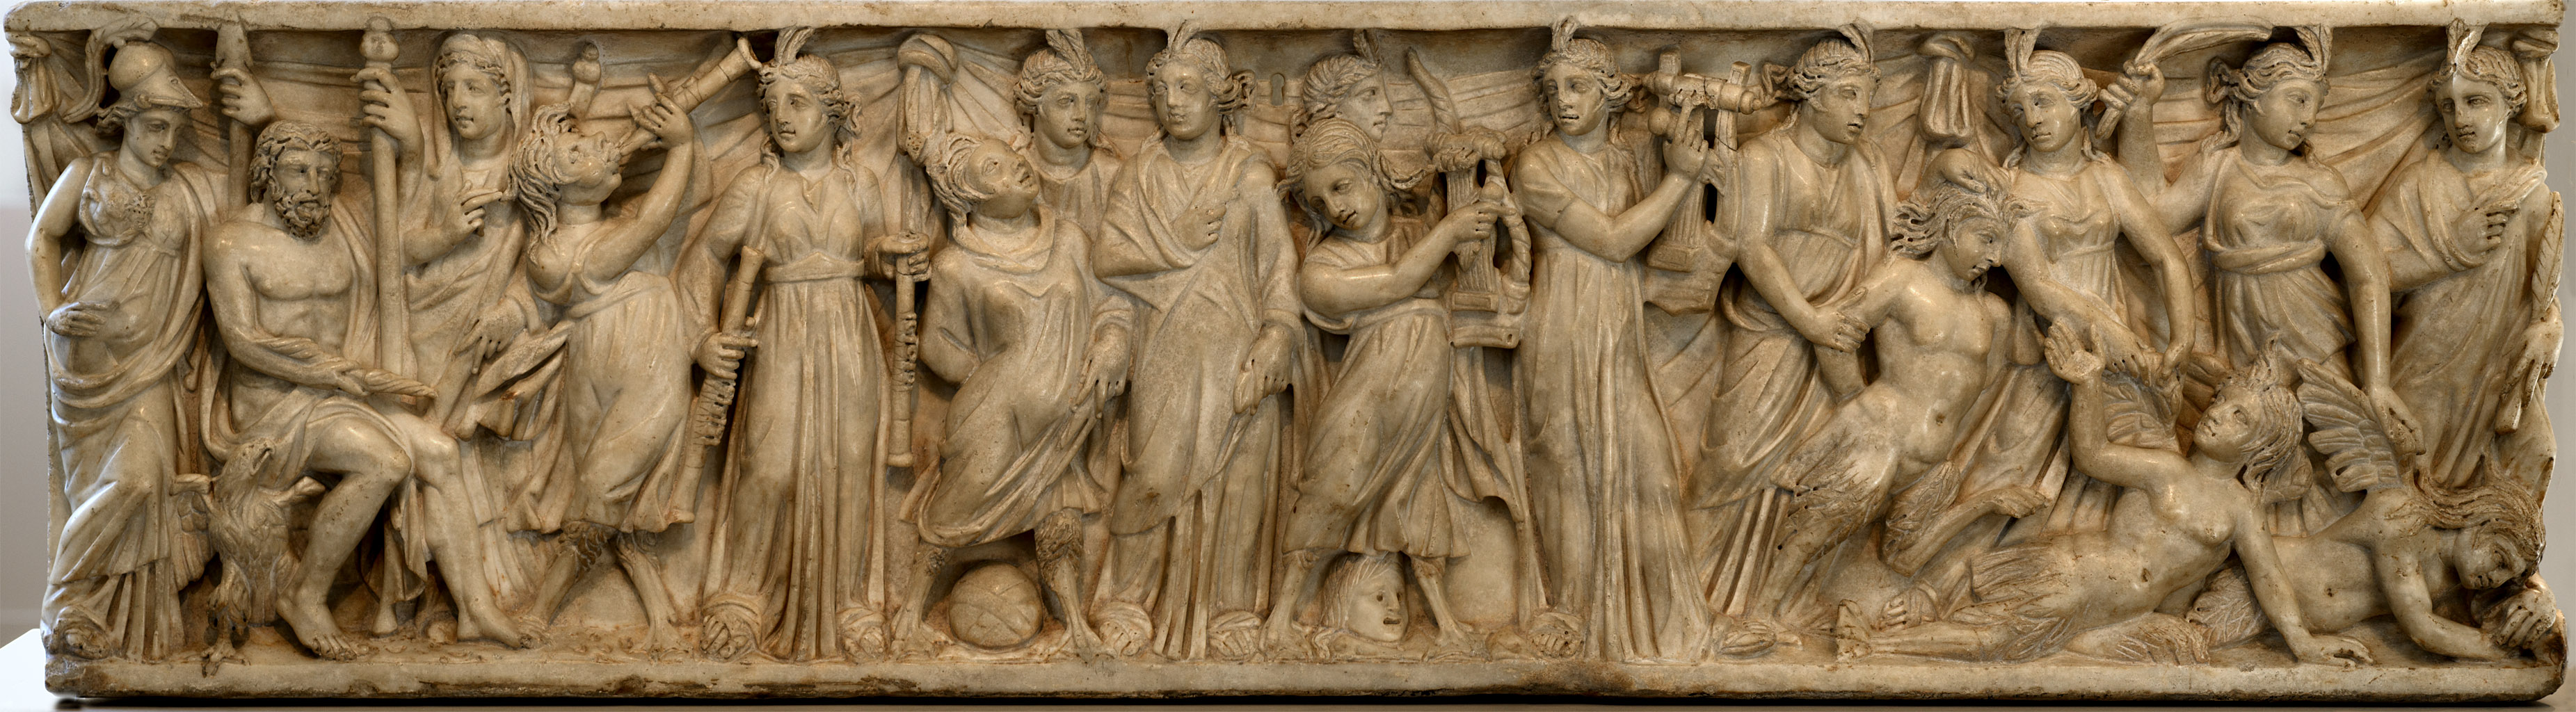 Sarcophagus with the contest between the Muses and the Sirens. Marble. Roman. Third quarter of the 3rd cent. CE.  Inv. No. 10.104. New York, the Metropolitan Museum of Art